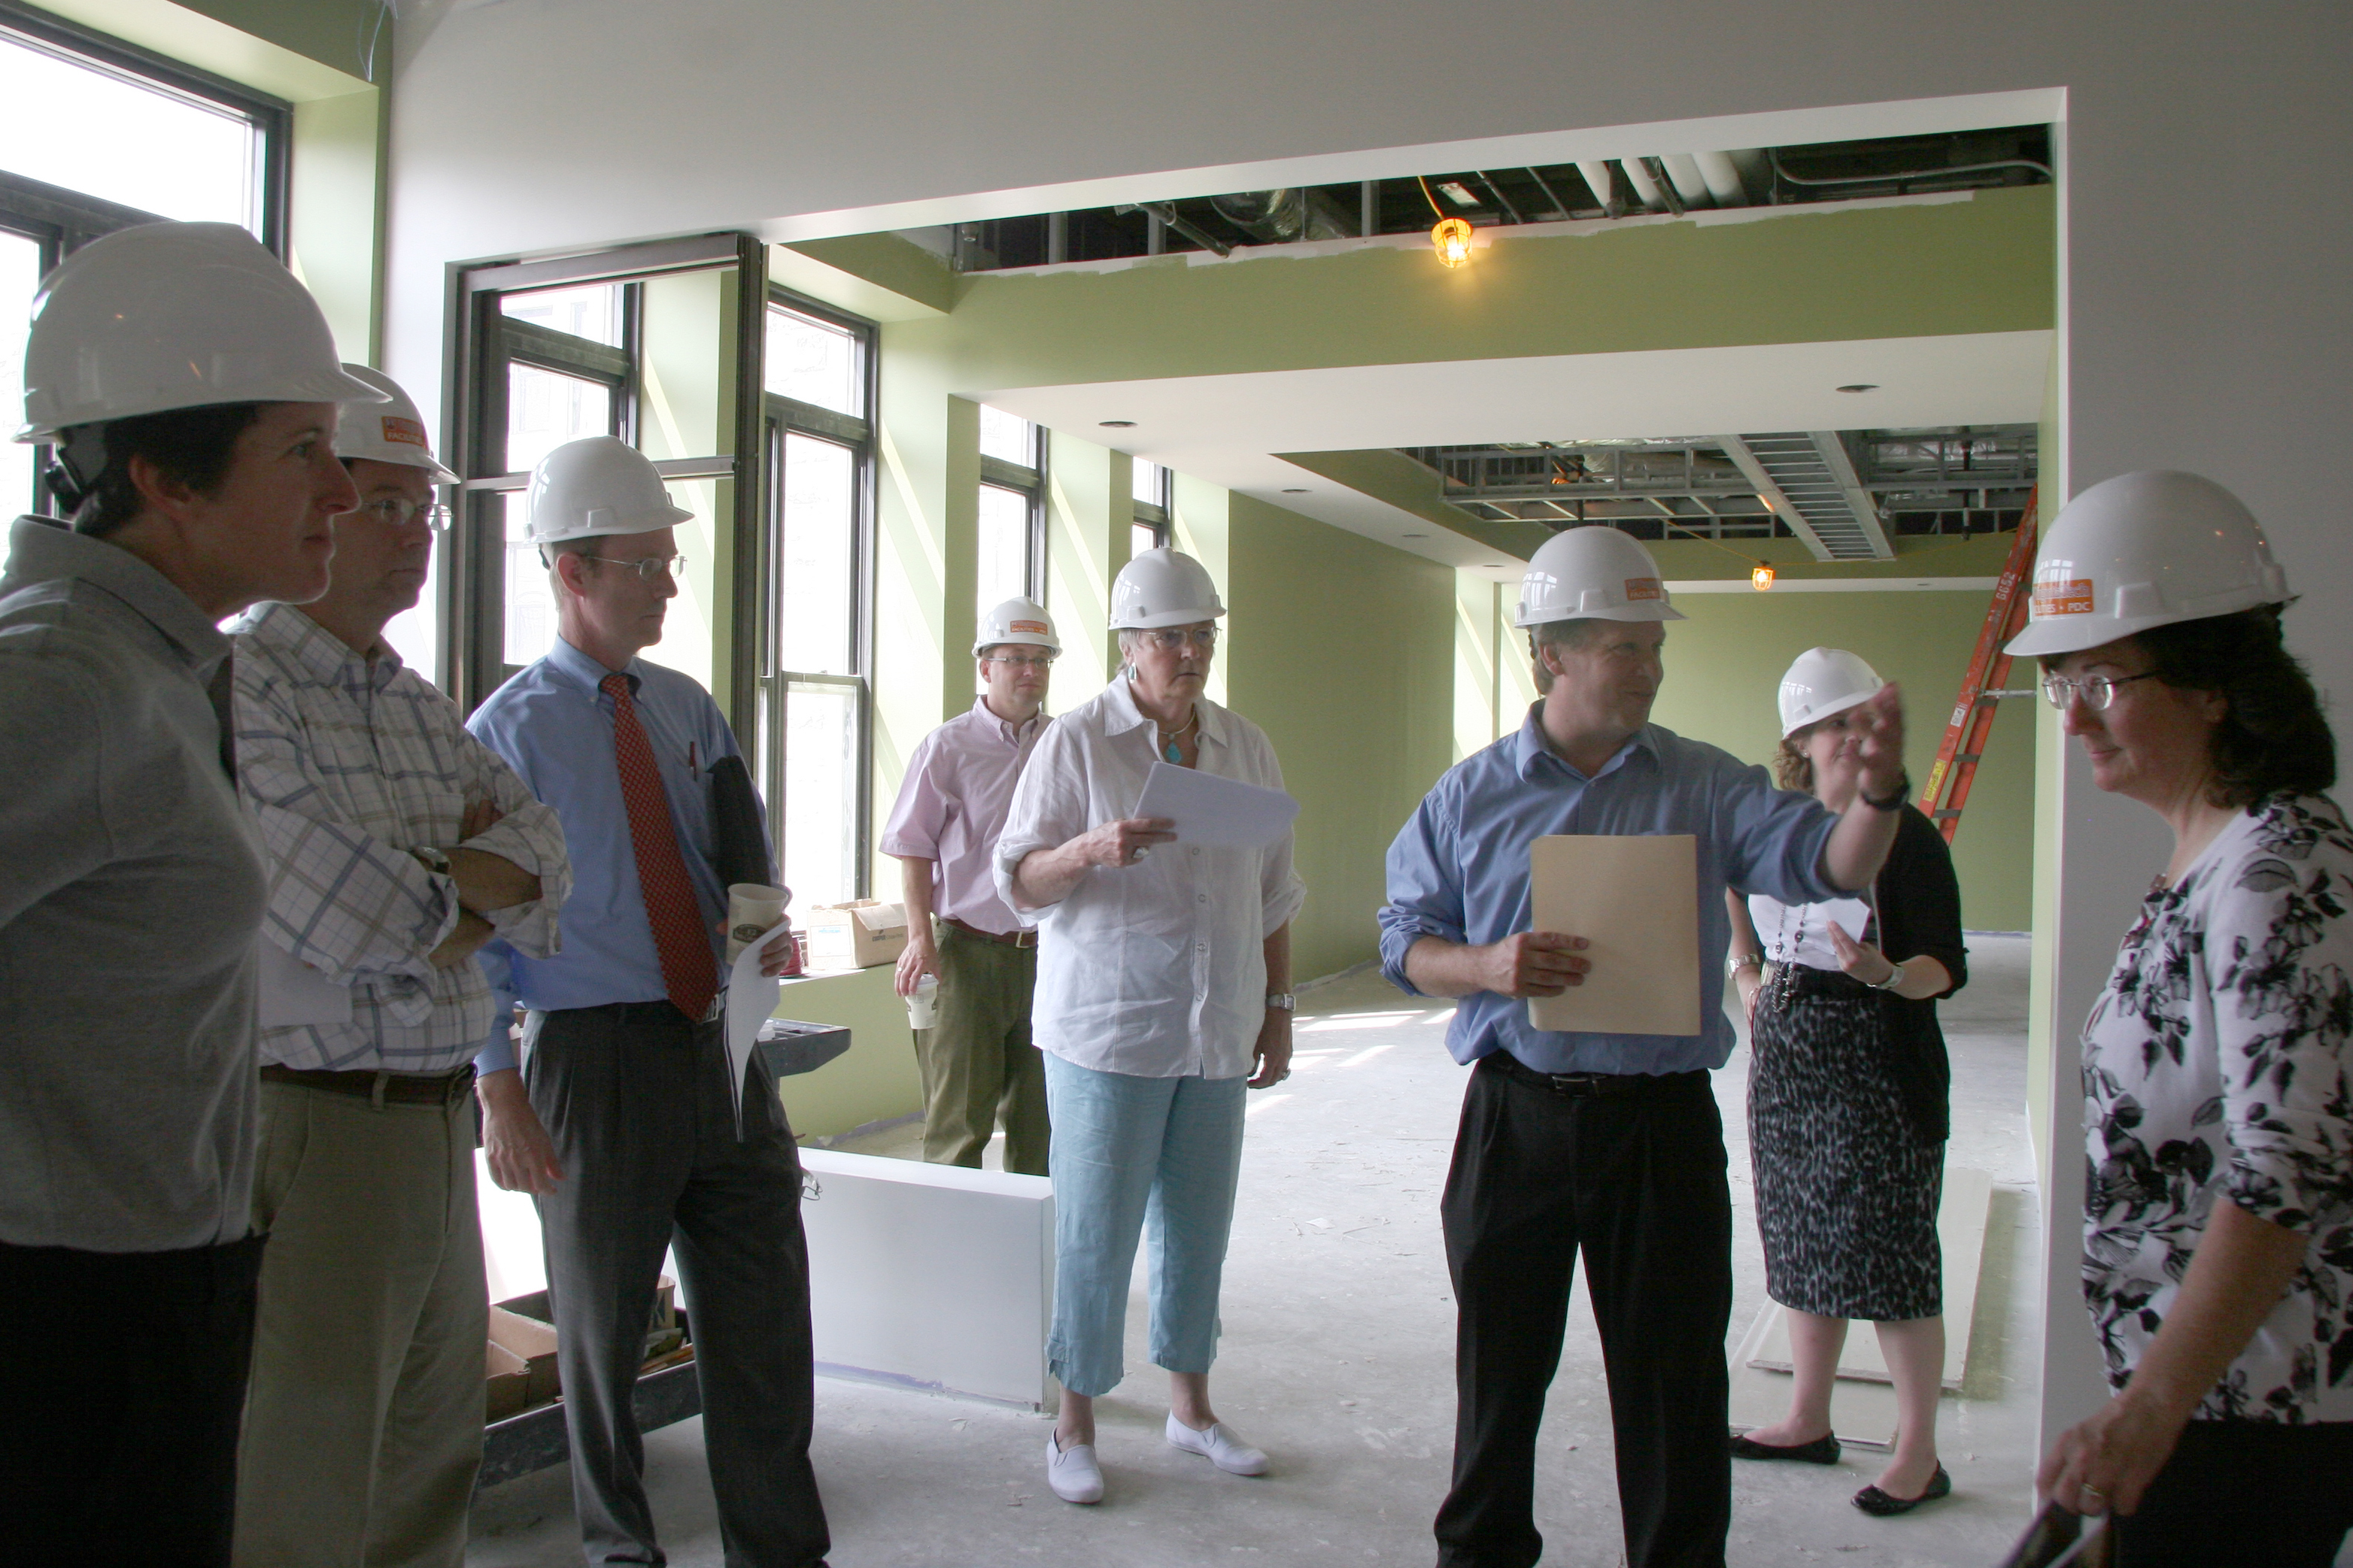 university launches new residential colleges to foster student administrators tour the renovation